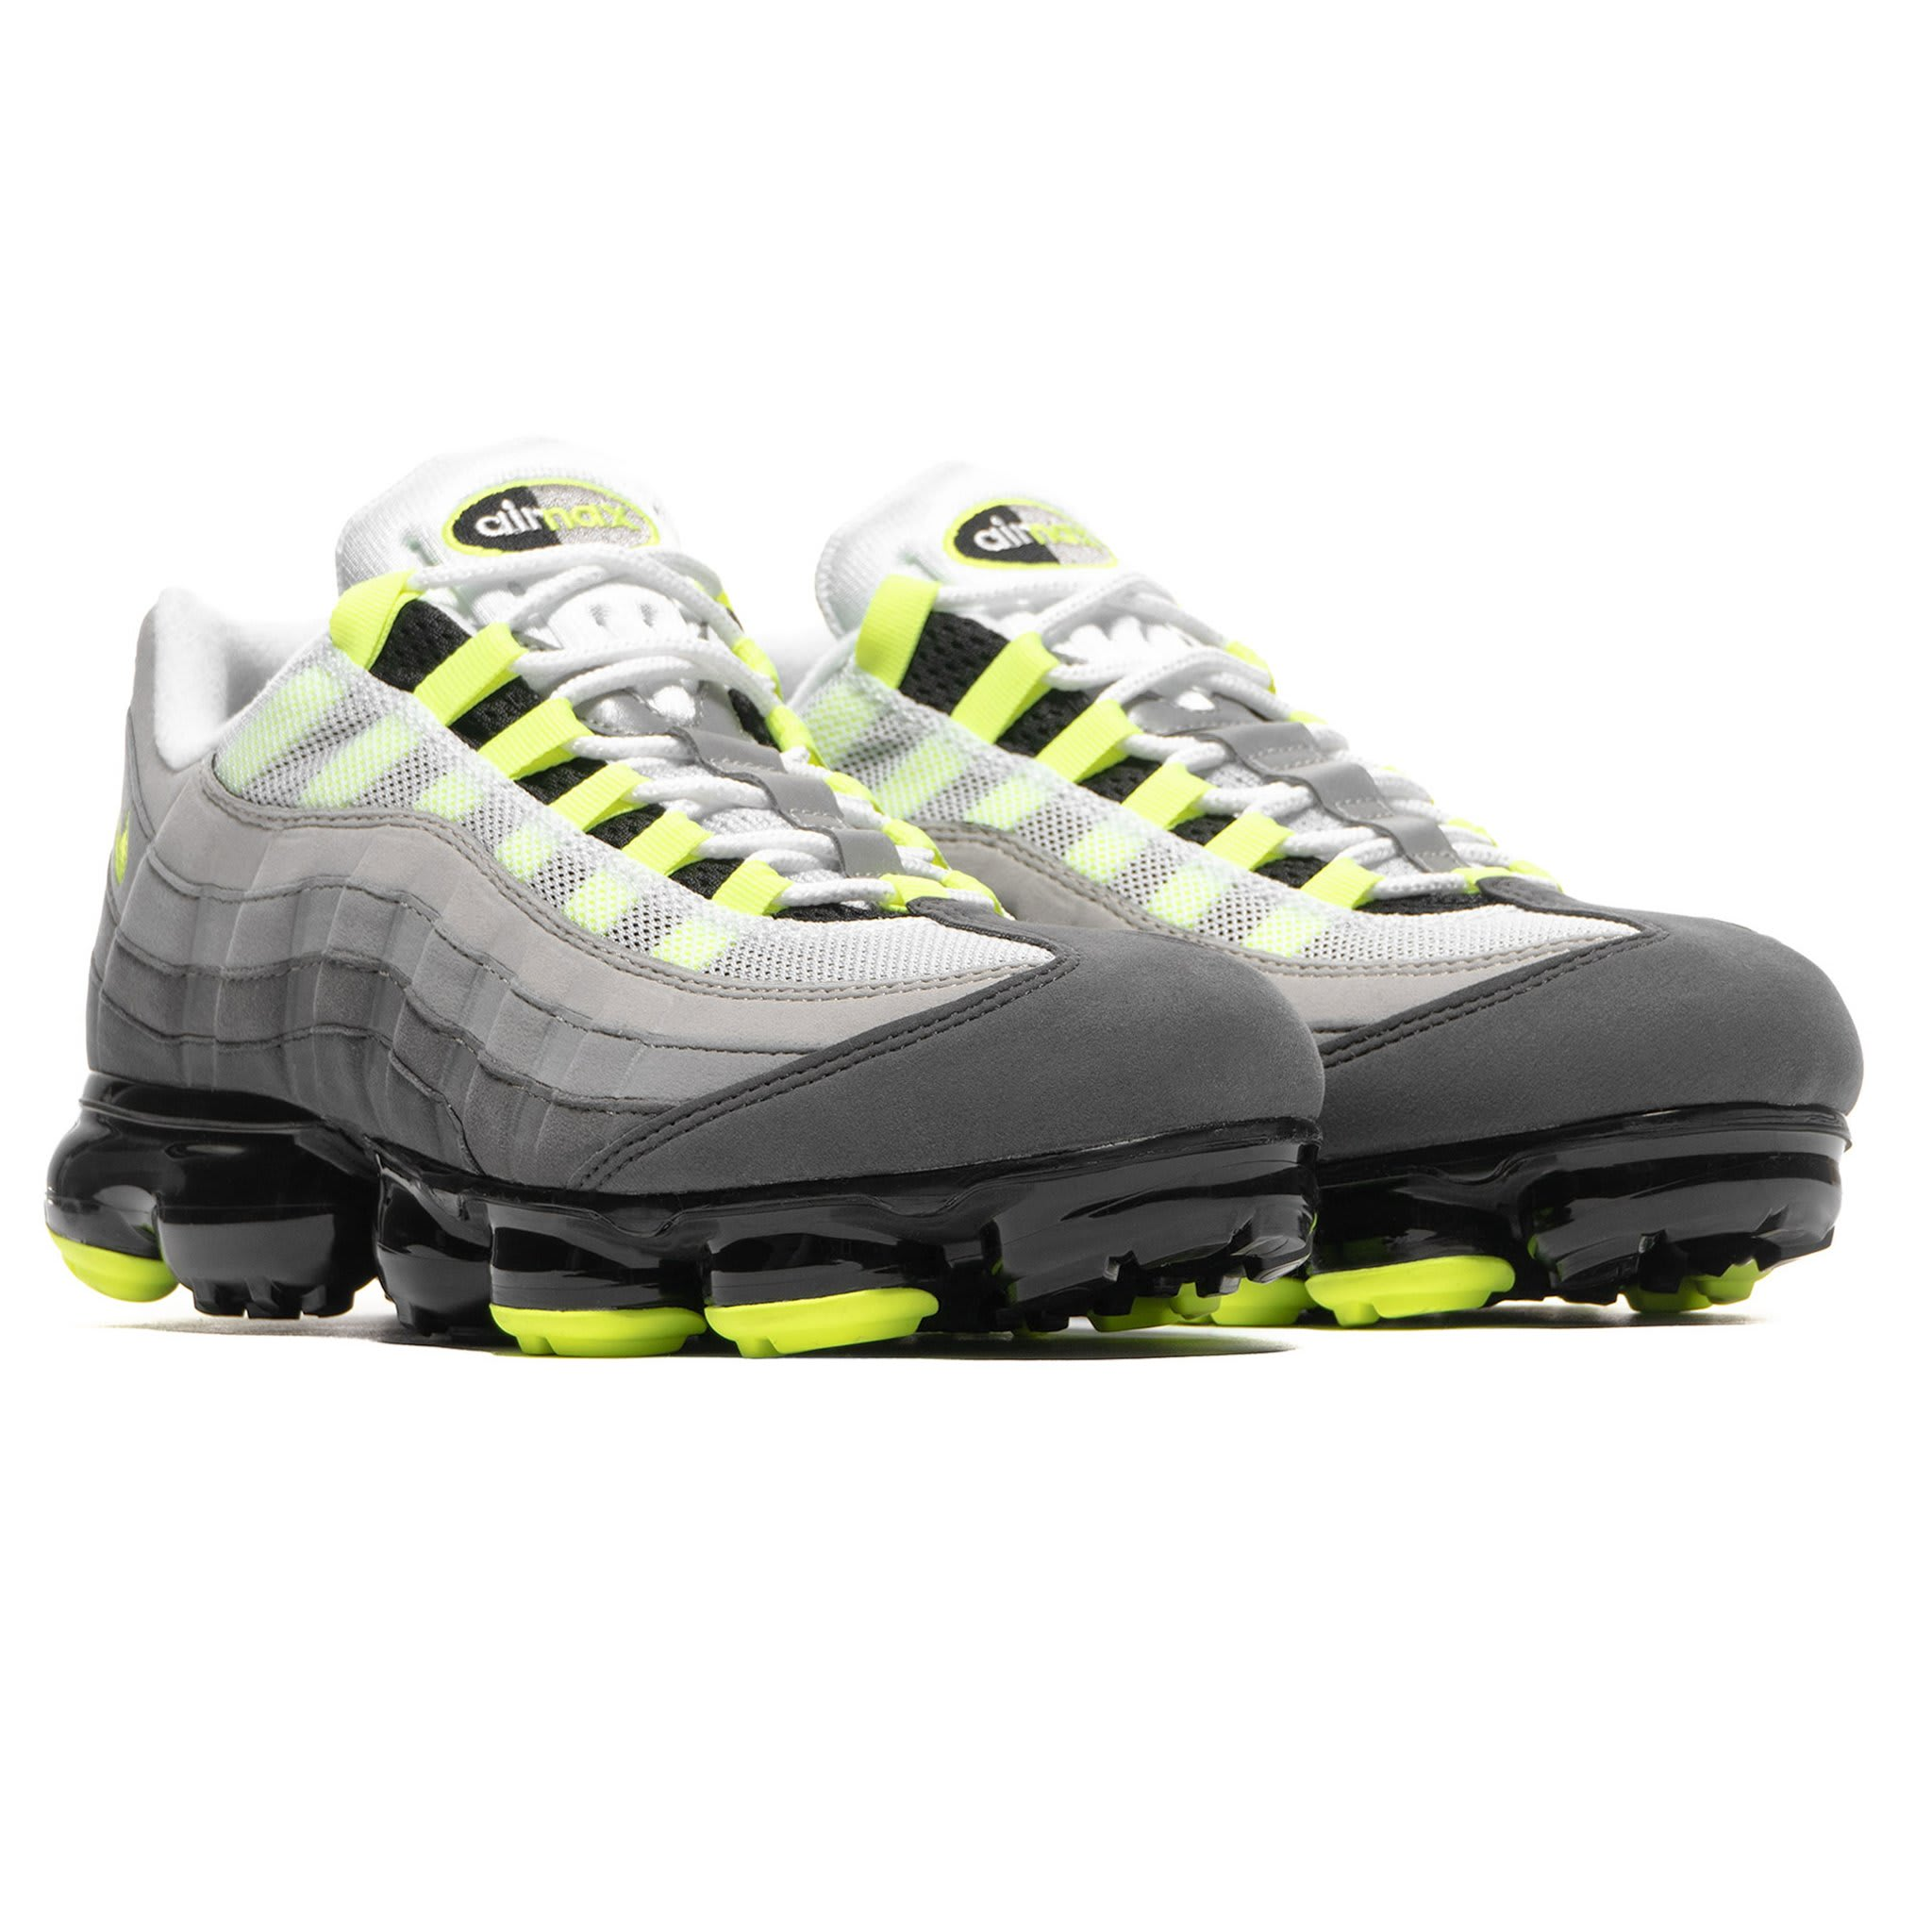 premium selection 2ed86 a3730 Nike Latest Vapormax Hybrid: The Air Vapormax 95 | HAVEN